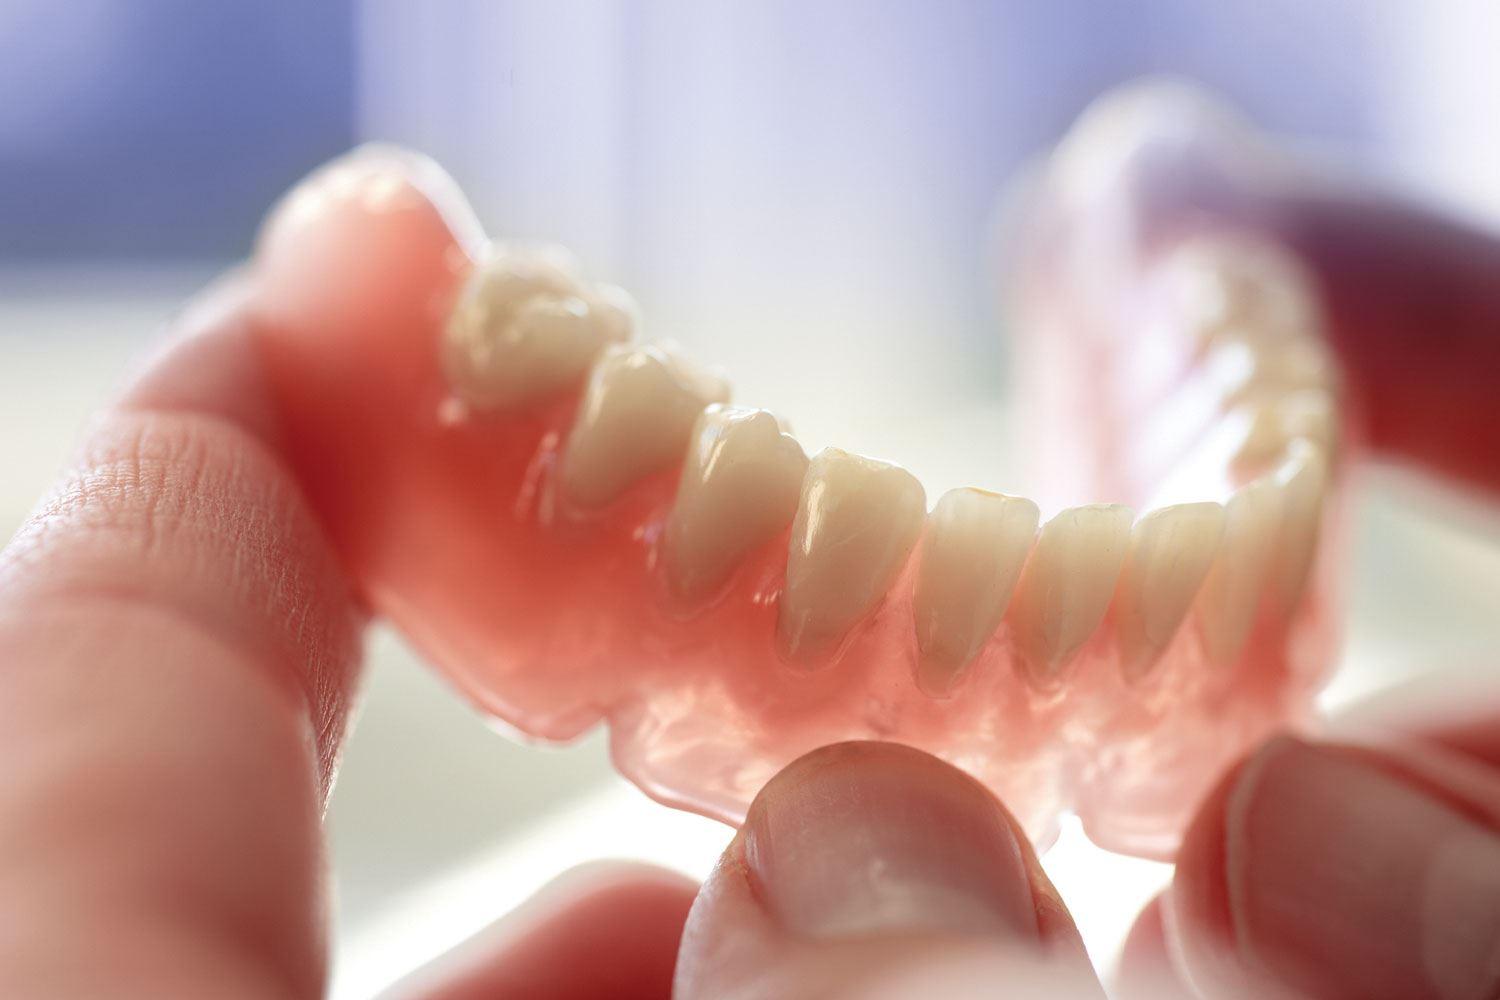 What is The Best Material for Making Dentures? – Jess Williams